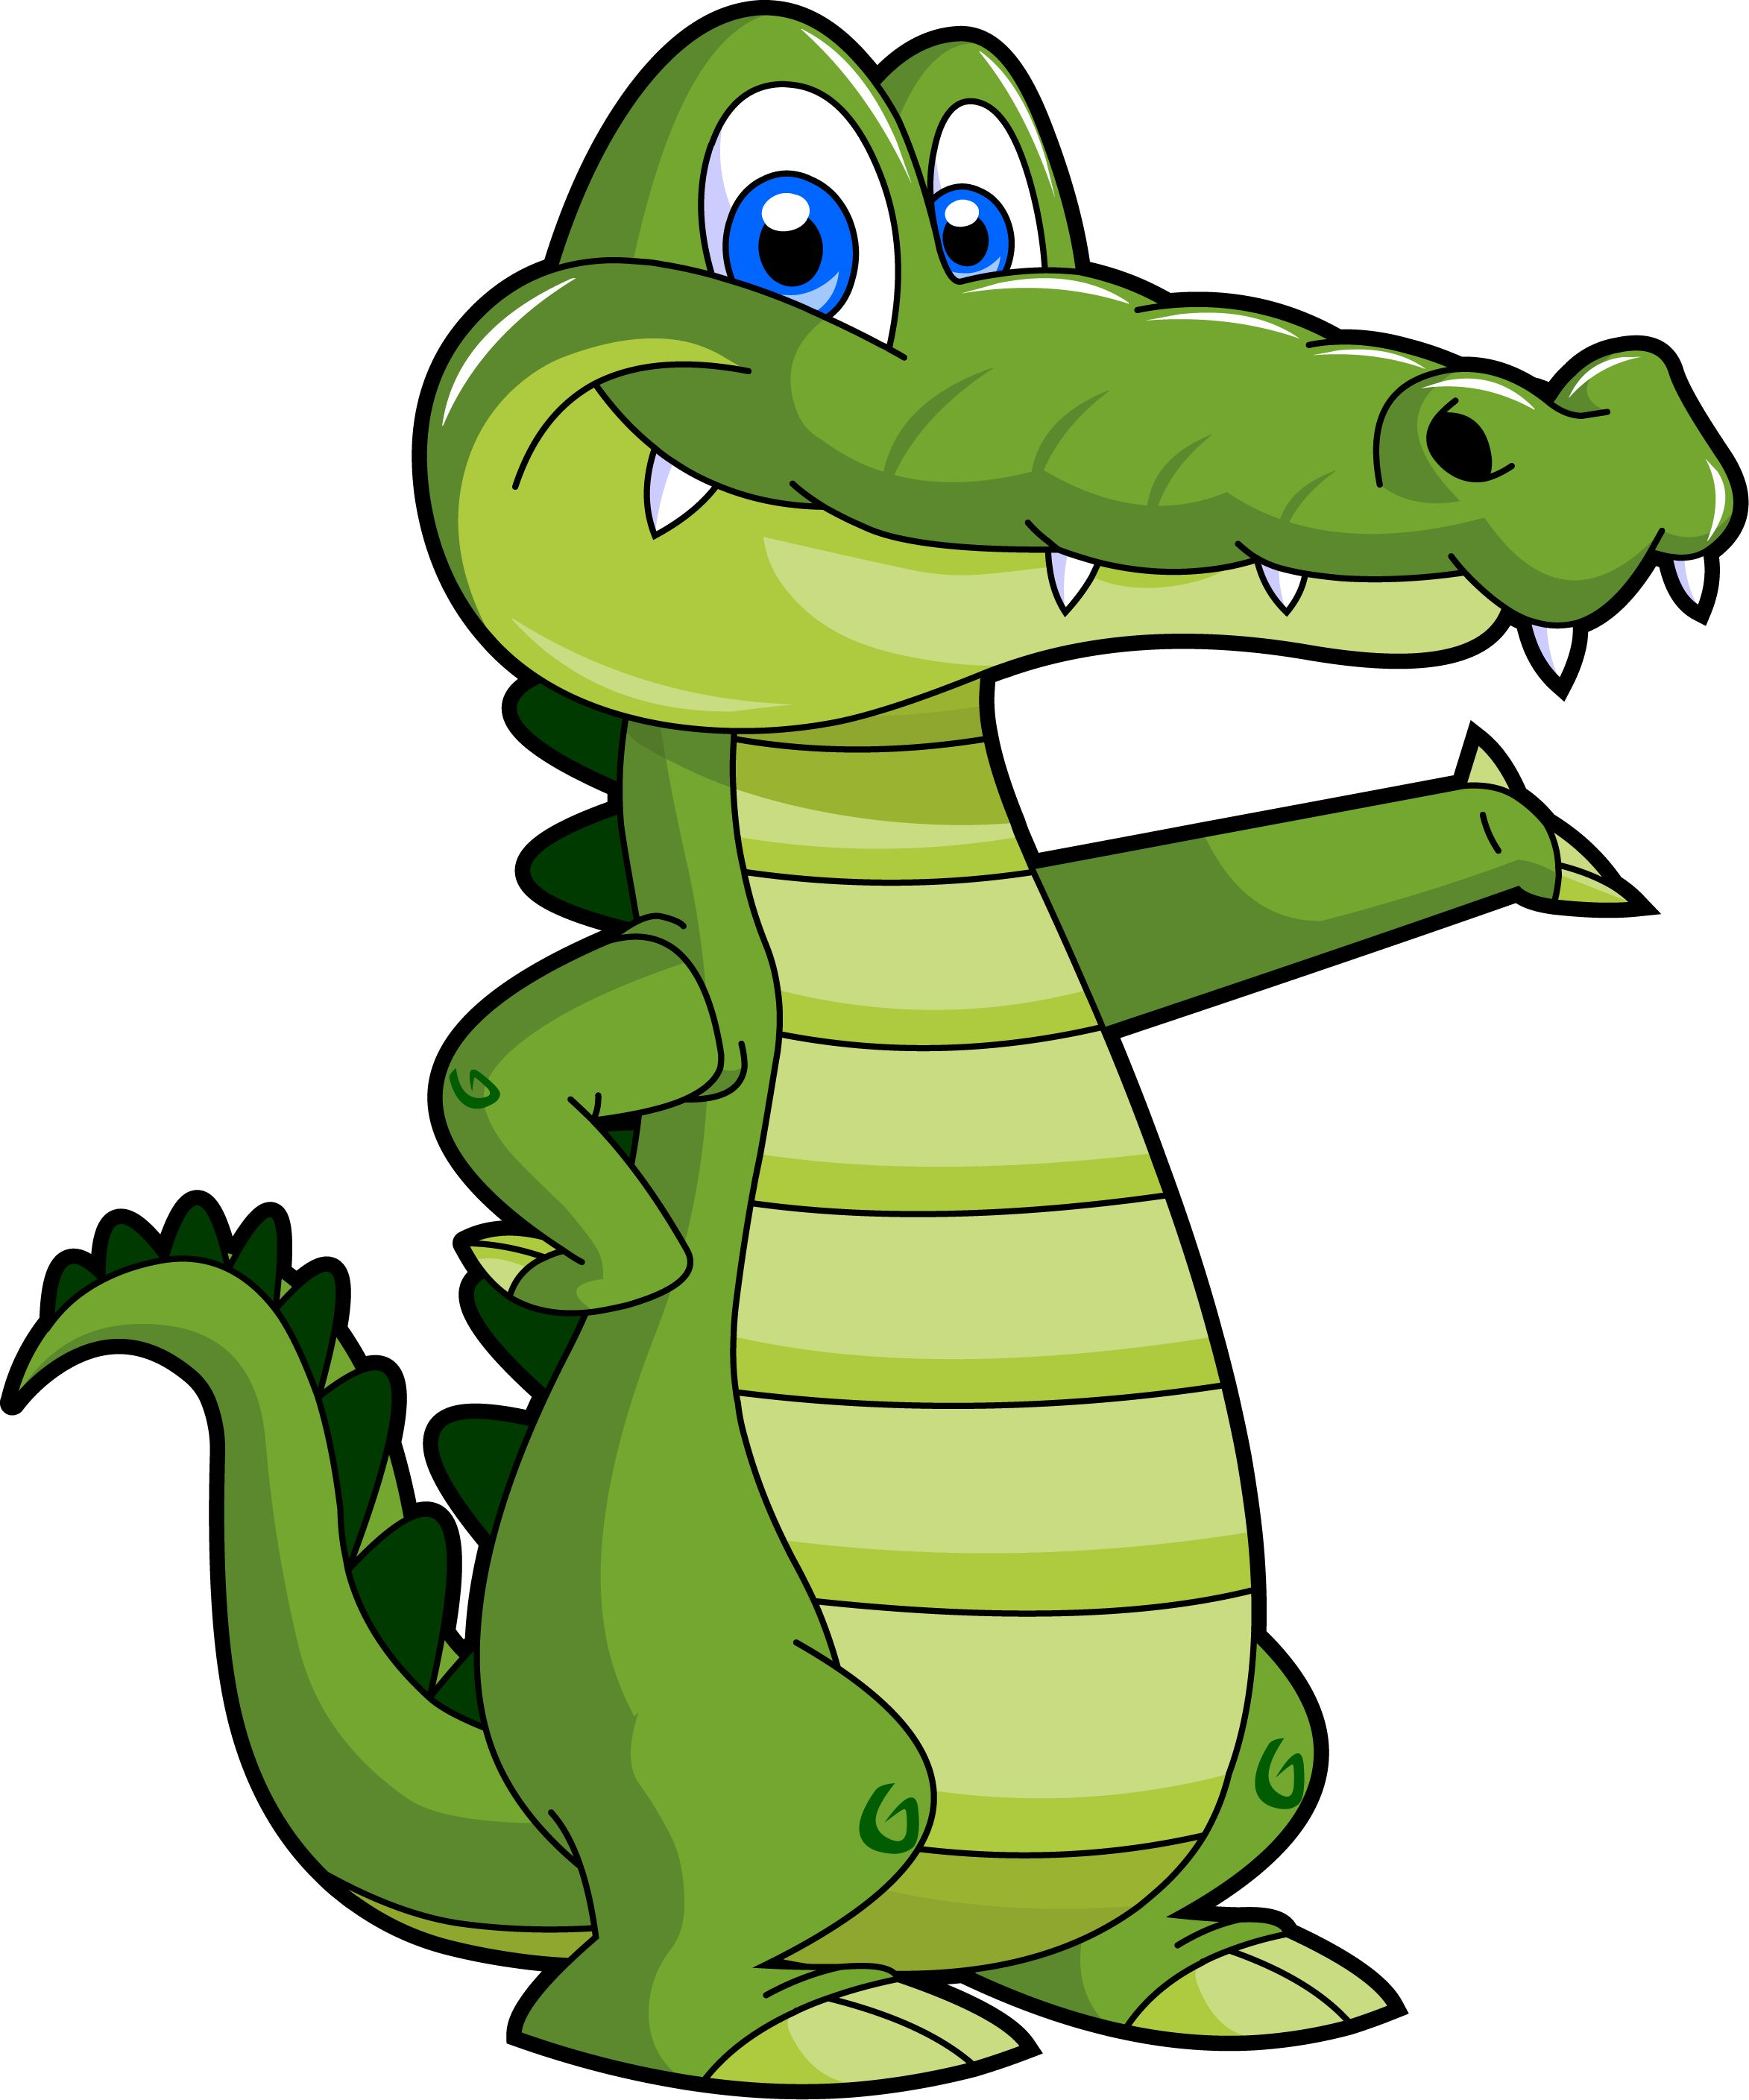 Alligator Clip Art  Cartoon Alligator Clipart